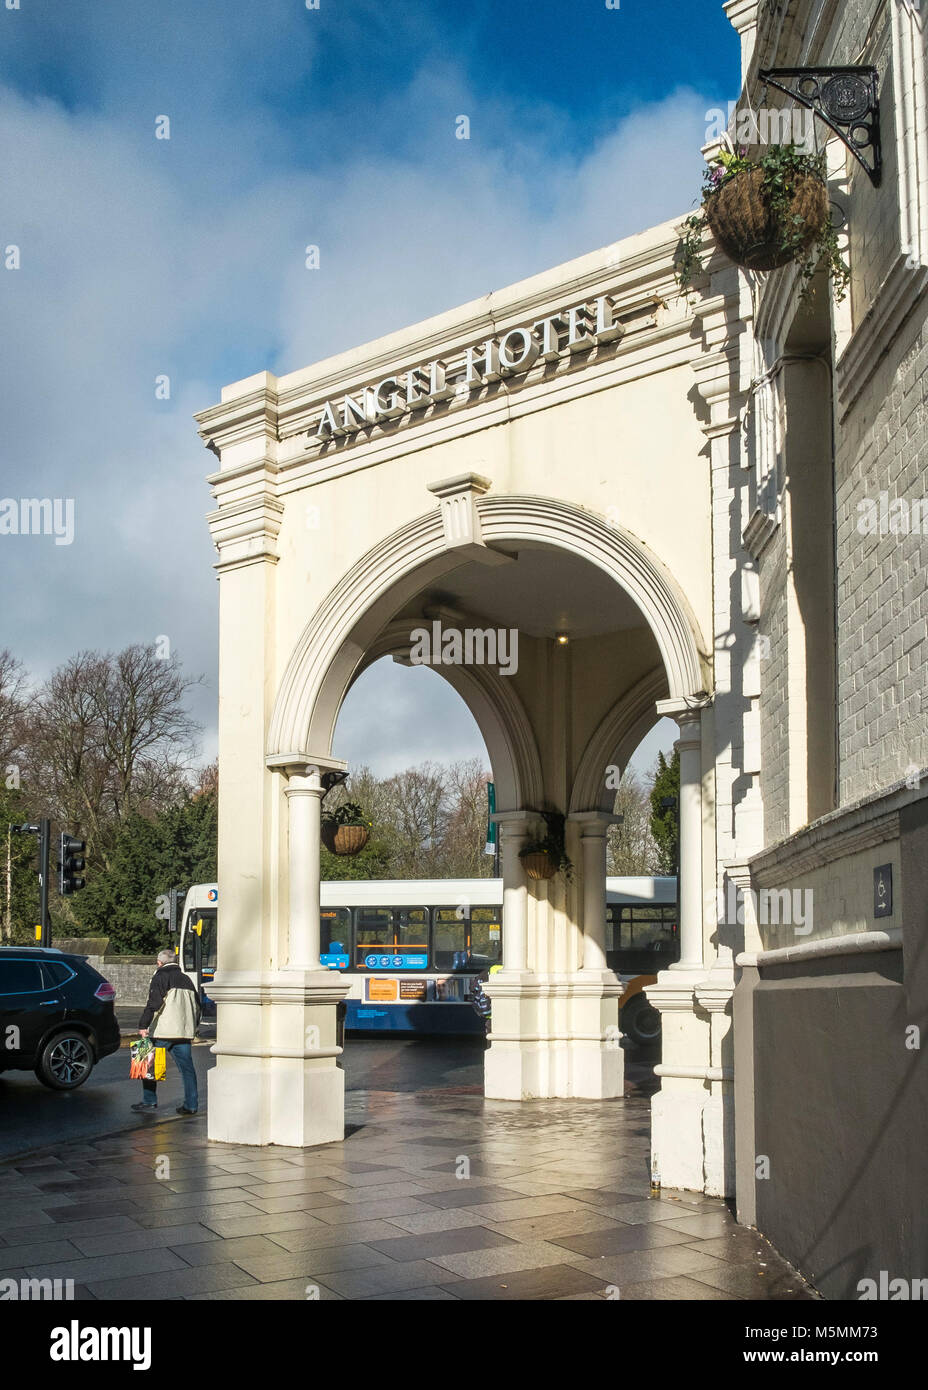 The portico of the historic Angel Hotel in Cardiff Wales. - Stock Image